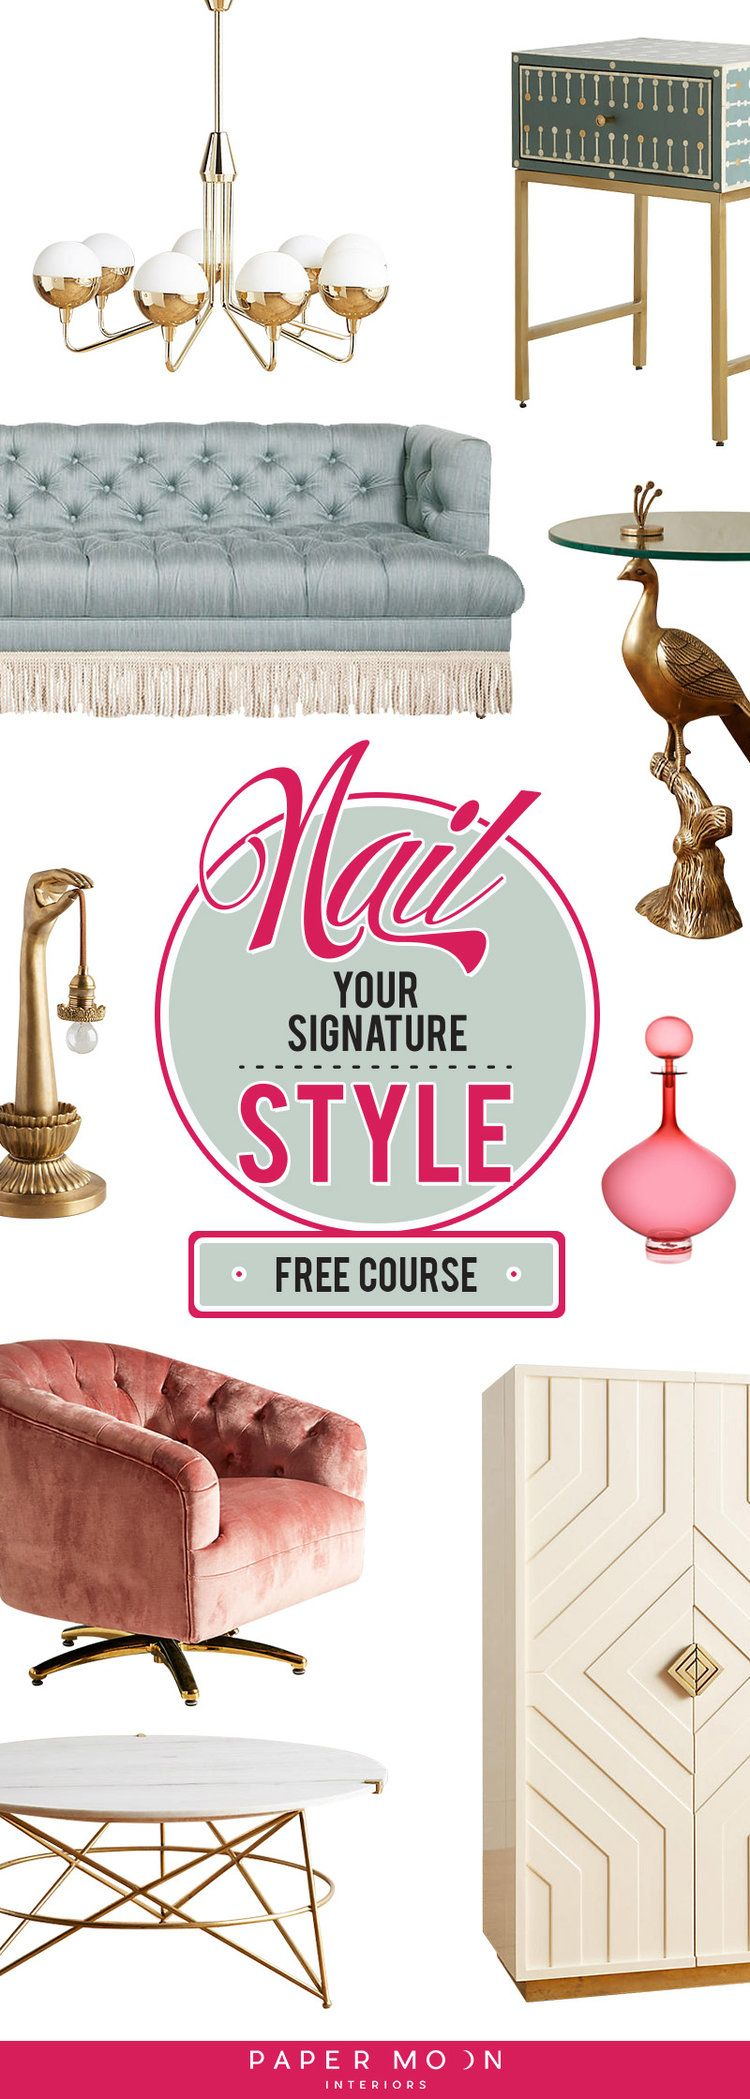 It's time to nail your signature interior design style